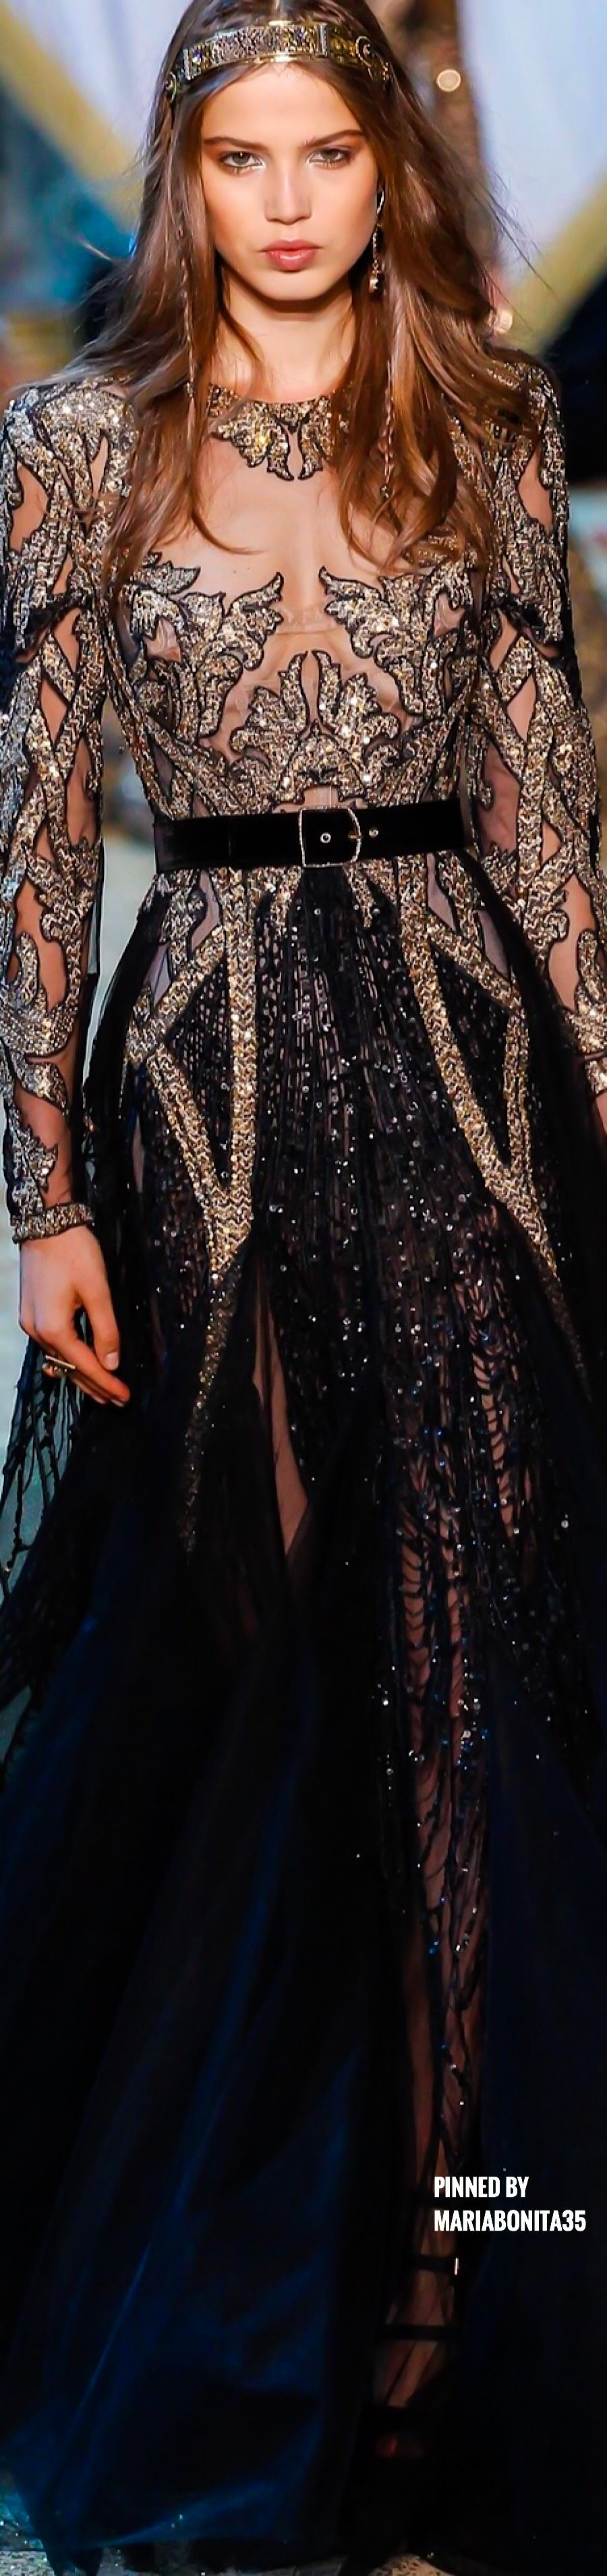 Elie saab fall haute couture dress pinterest elie saab fall